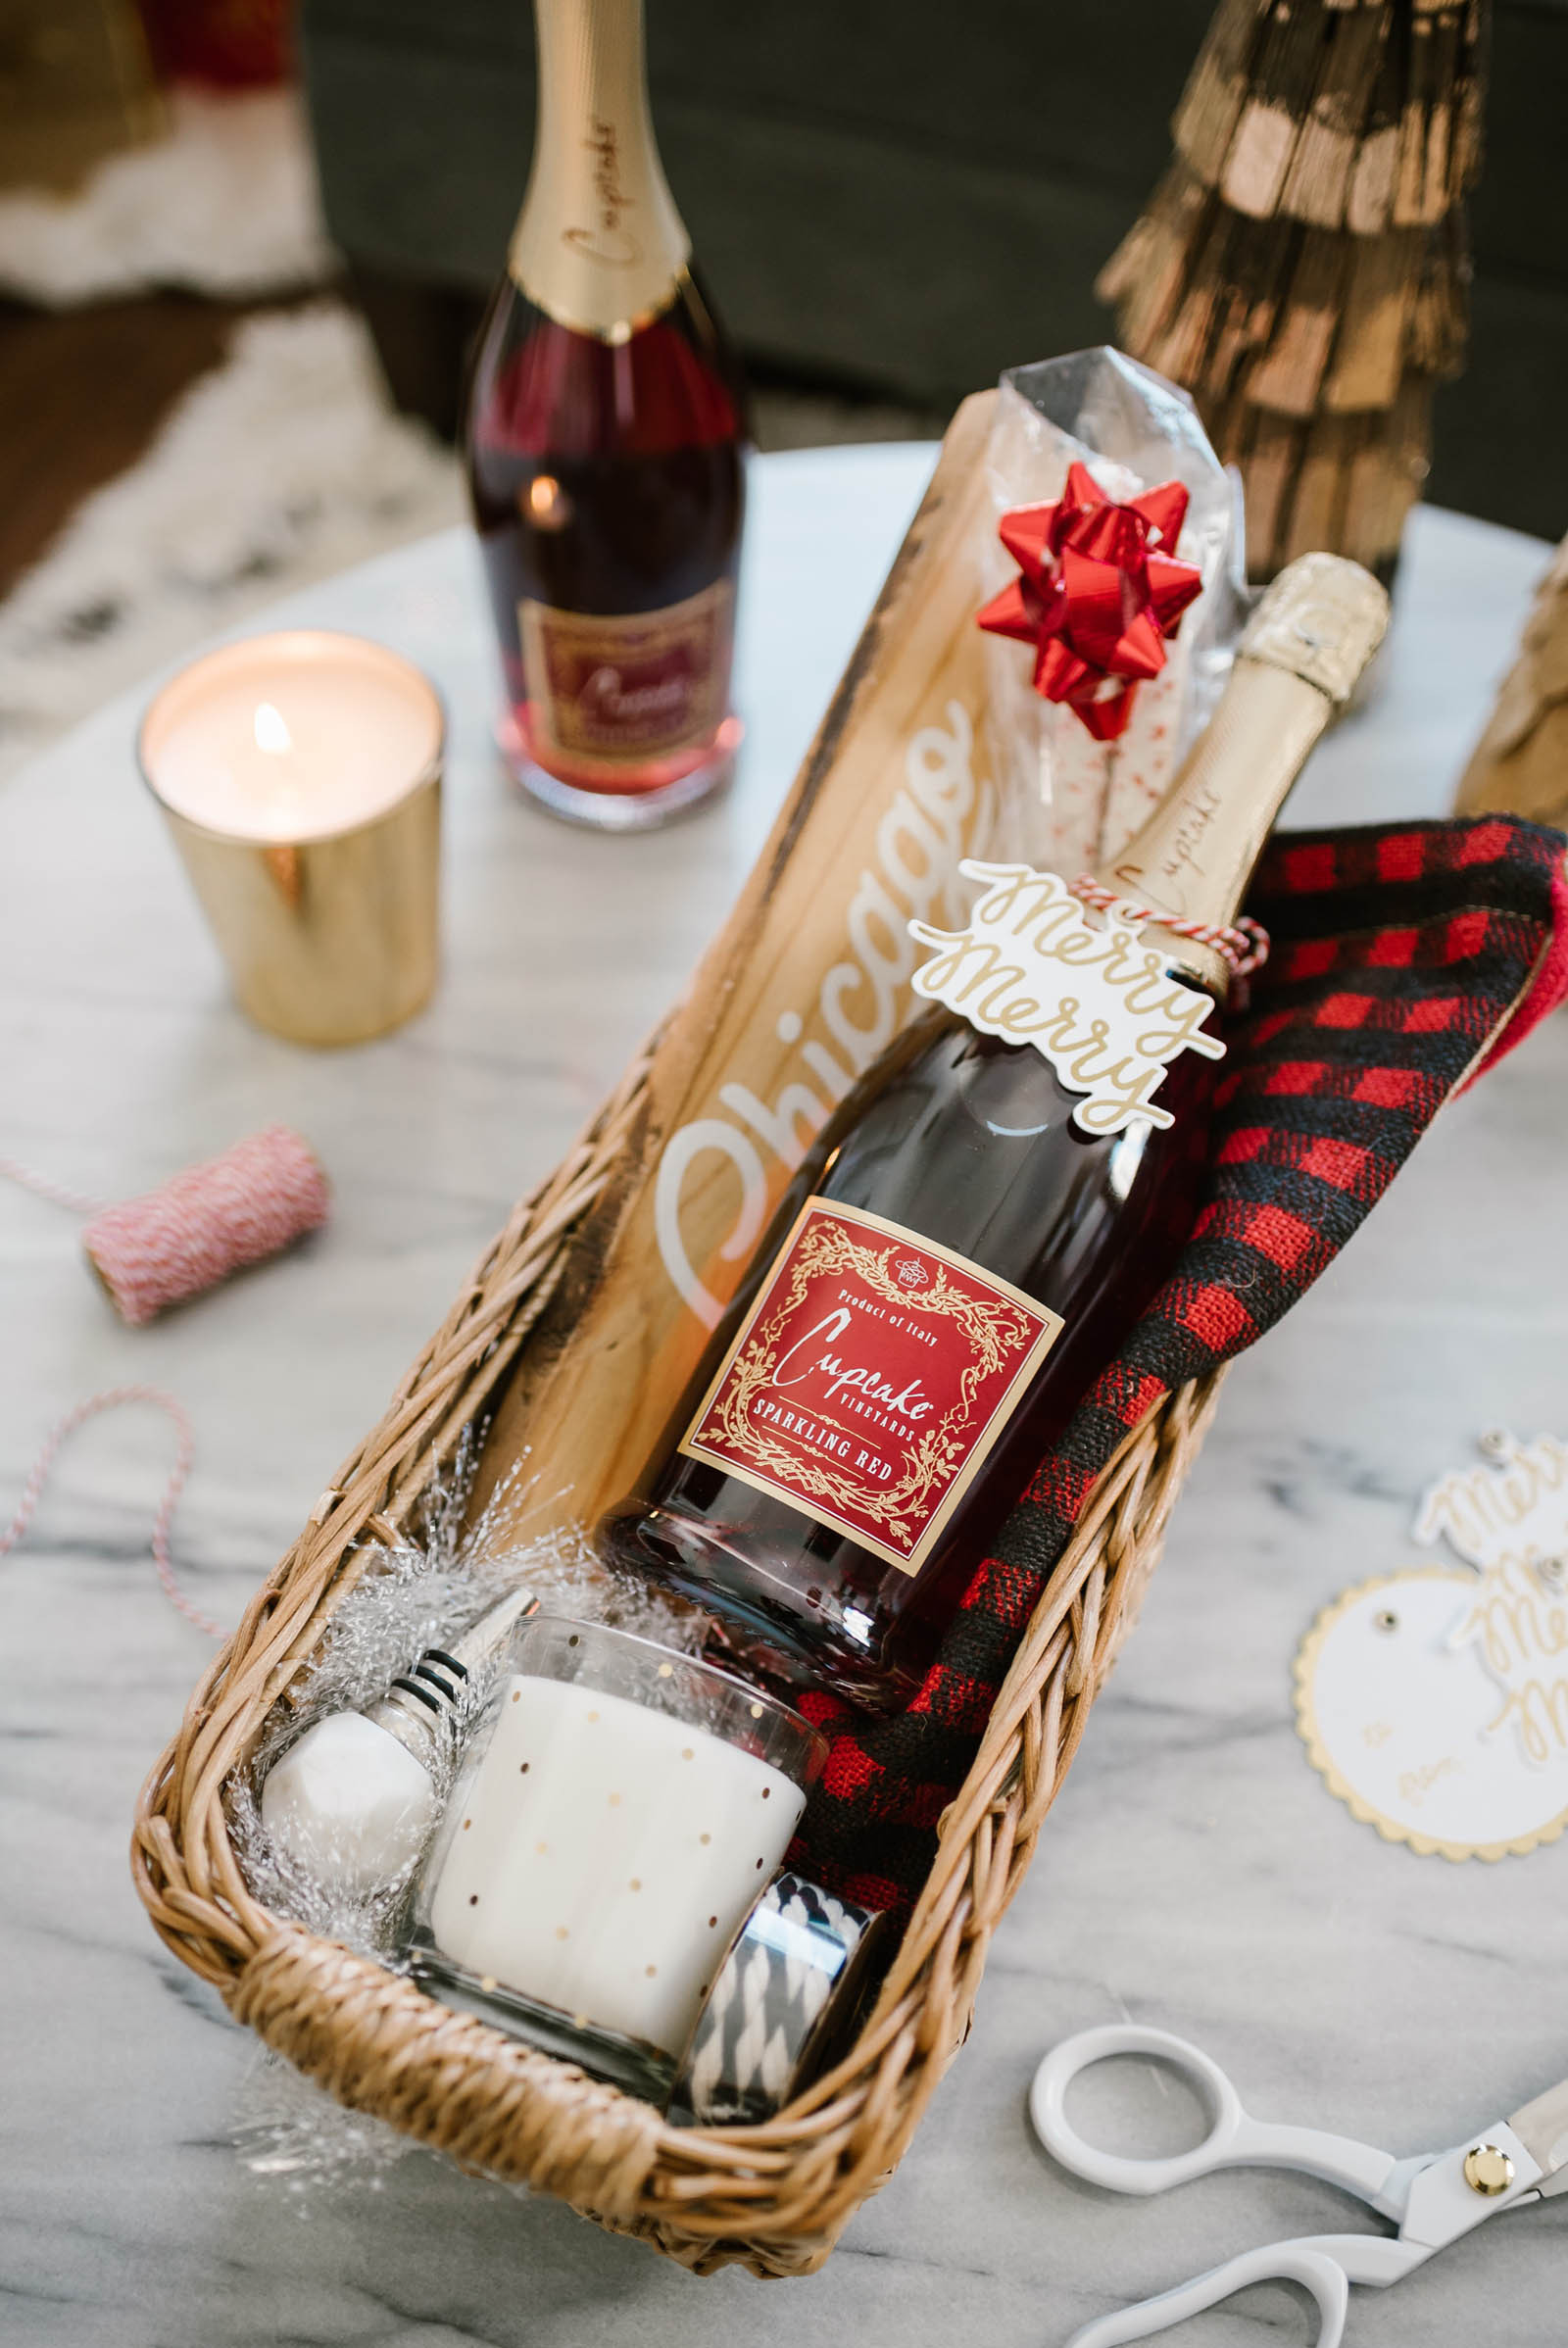 Best ideas about Wine Basket Gift Ideas . Save or Pin diy wine t baskets Do It Your Self Now.